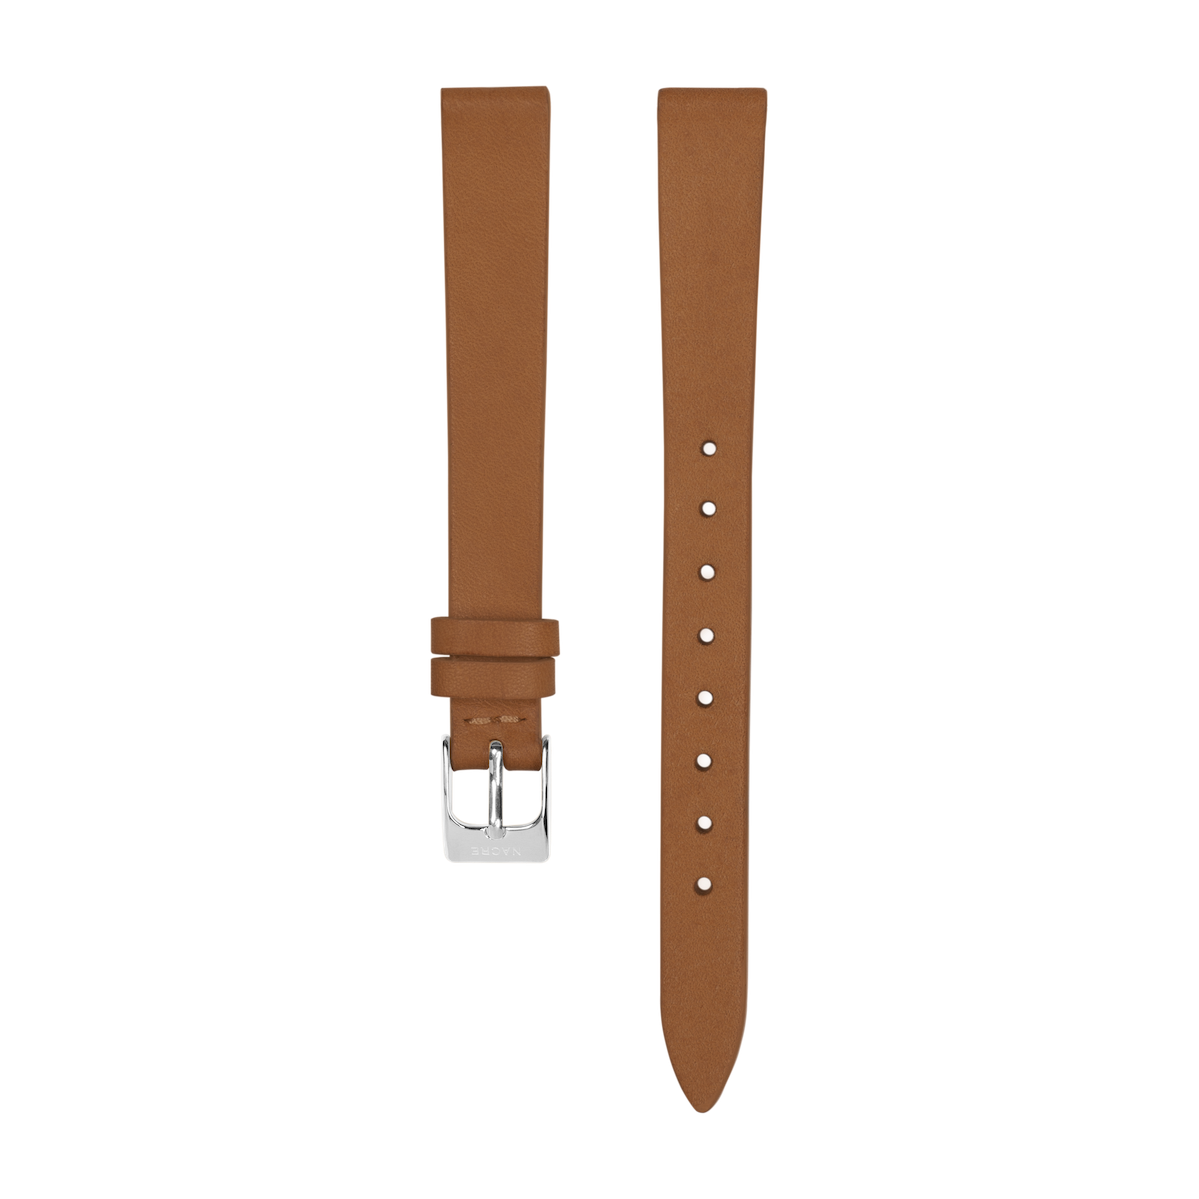 Strap - Italian Leather - Saddle Leather - Stainless Steel - 12mm